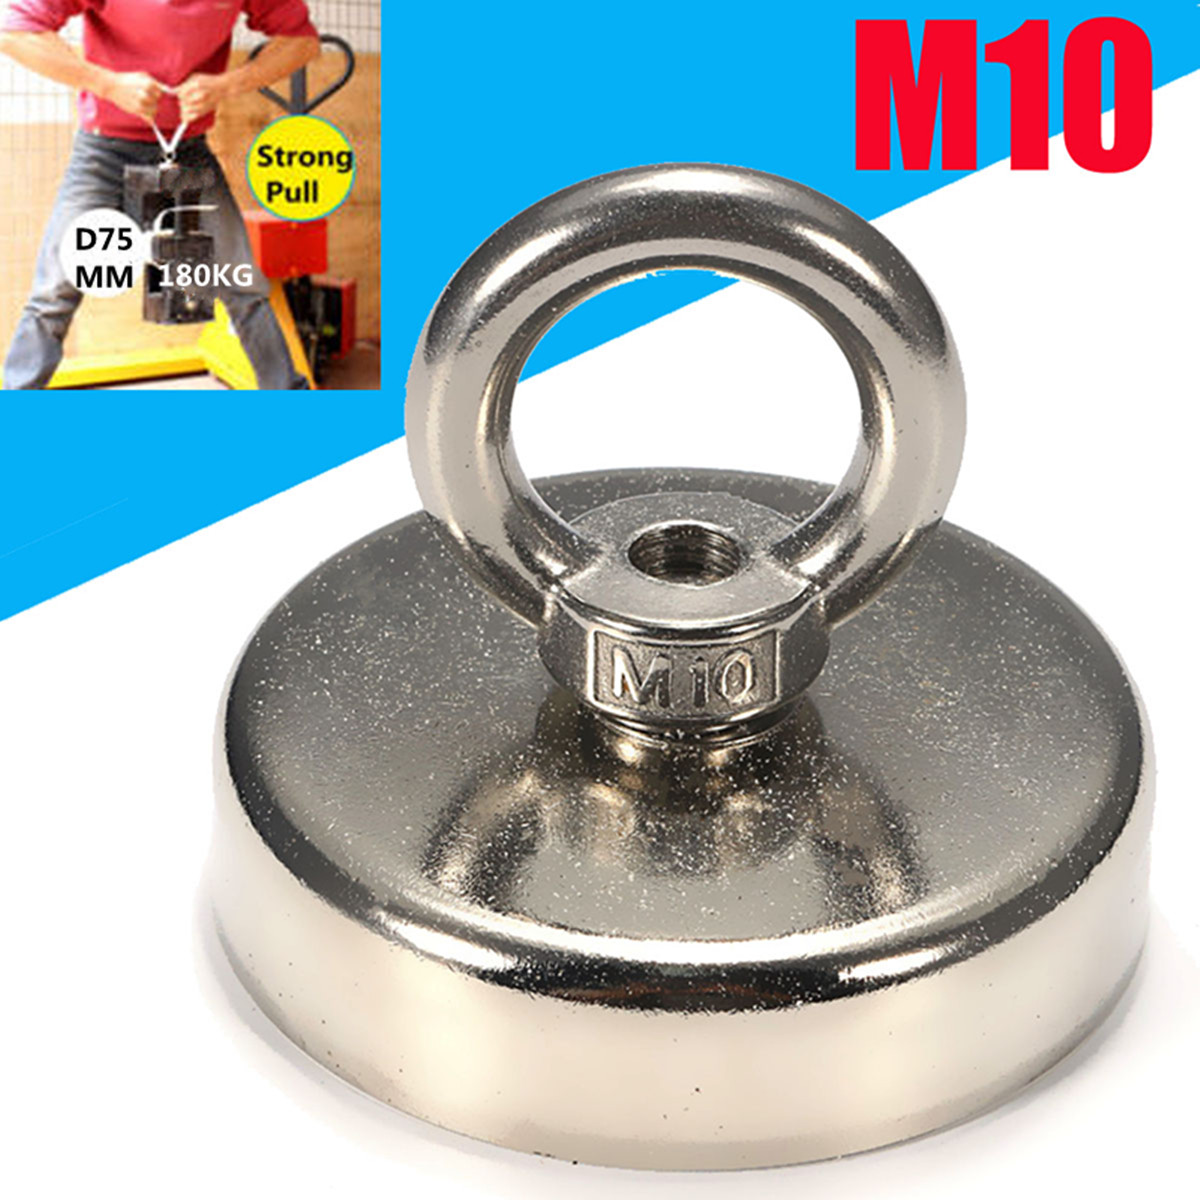 180KG Super Strong Magnet Pot Fishing Magnets Salvage Fishing Hook Magnets Strongest Permanent Powerful Magnetic